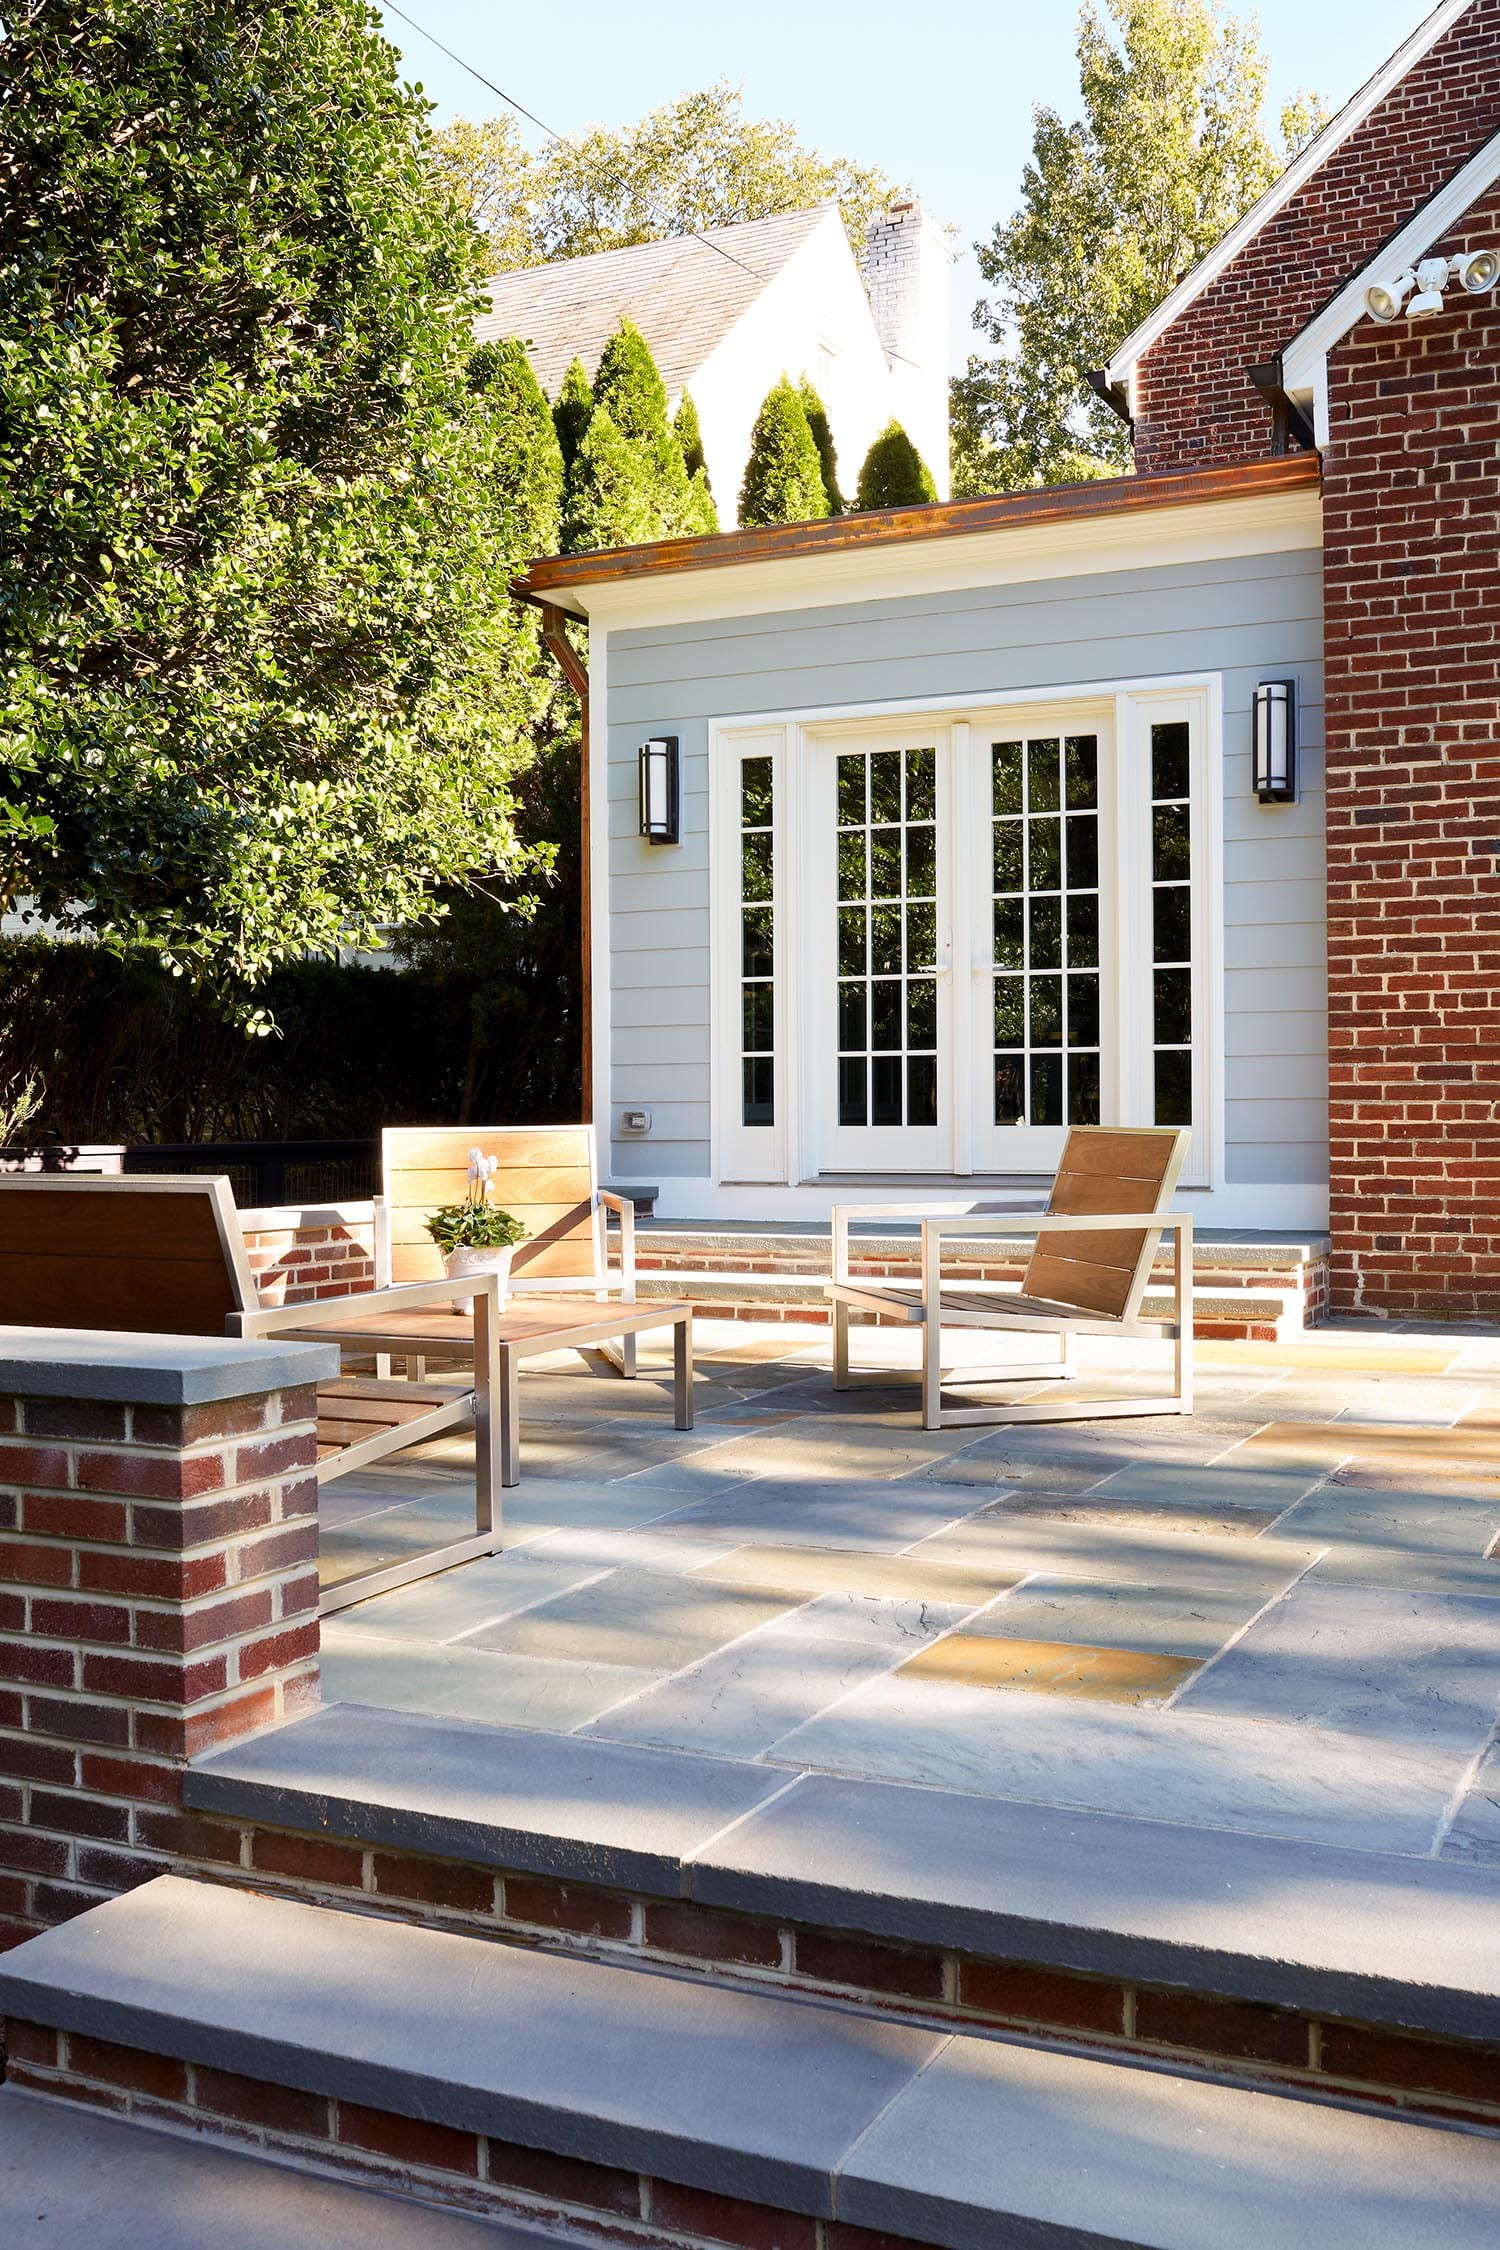 Home Renovation Contractors Chevy Chase, MD